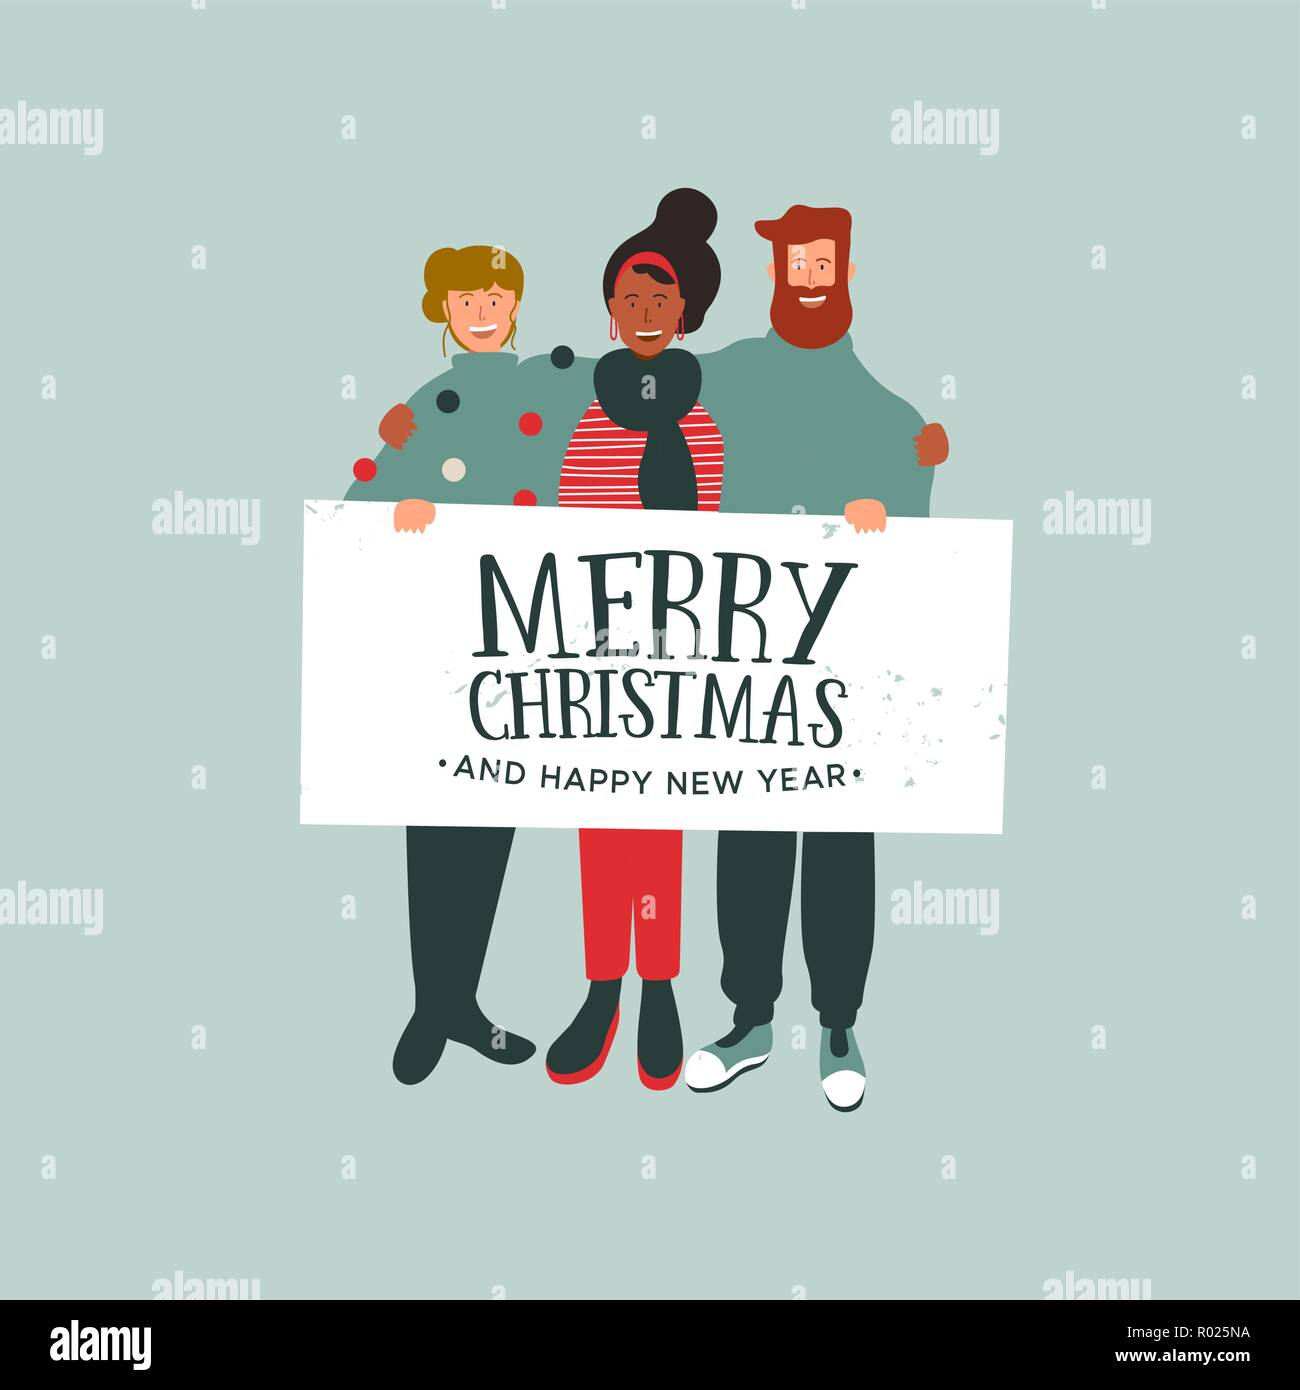 merry christmas and happy new year greeting card illustration young people friend group holding white banner sign with festive holiday message for se